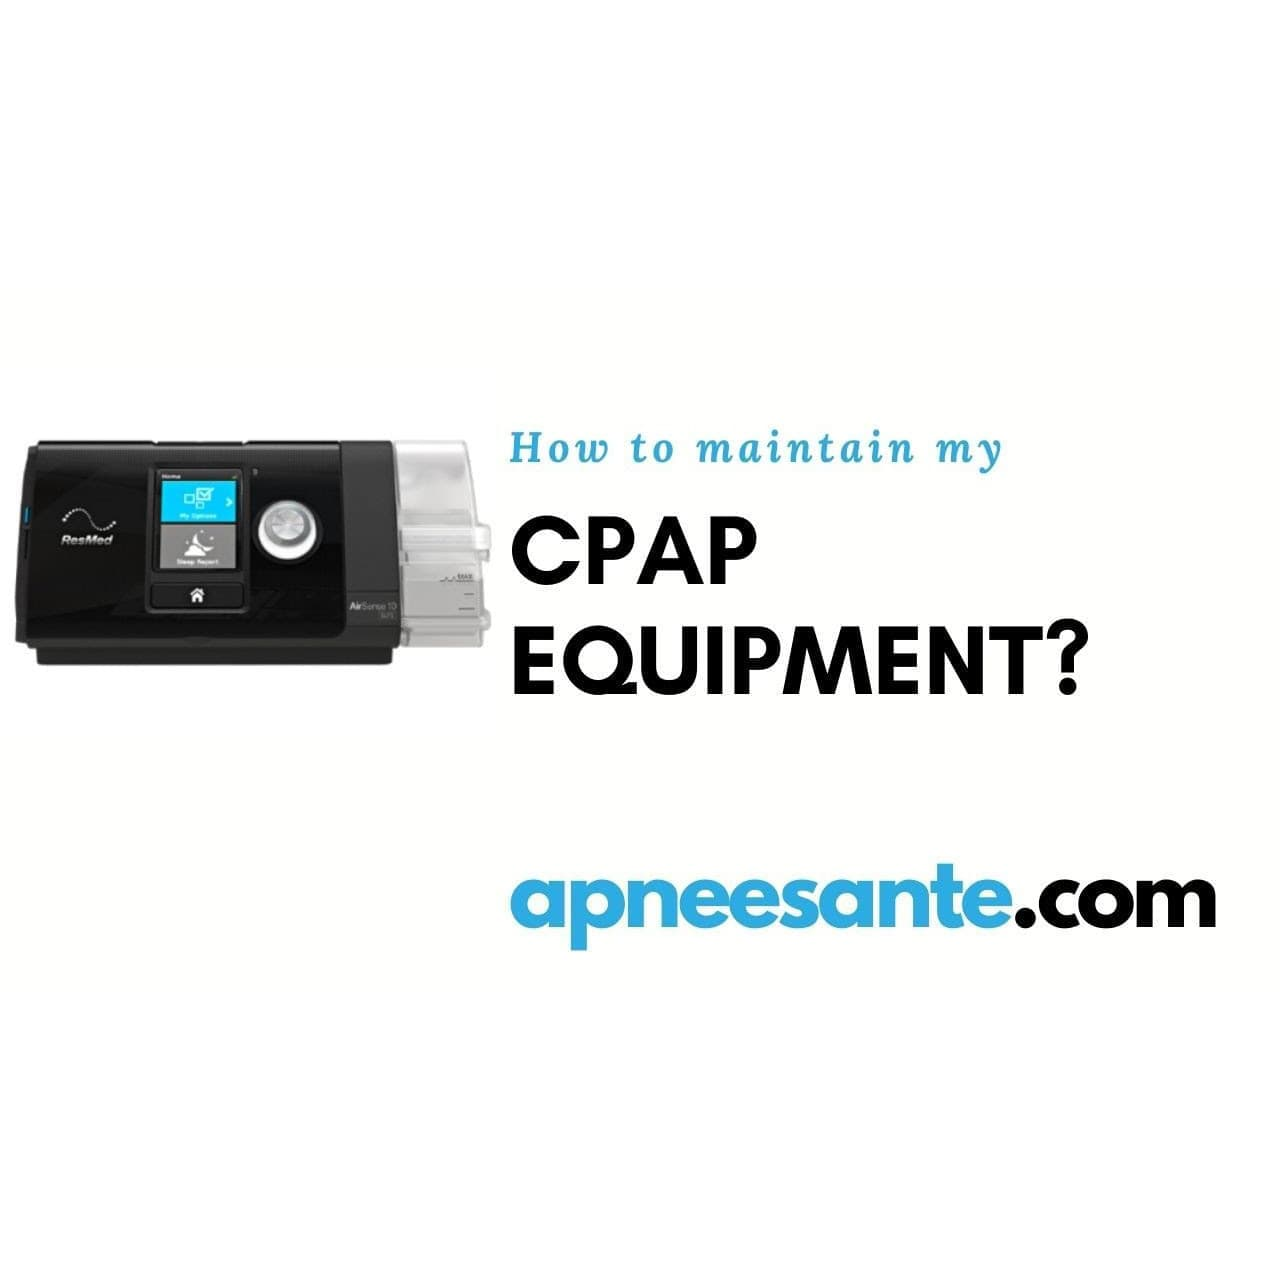 cpapcleaning care